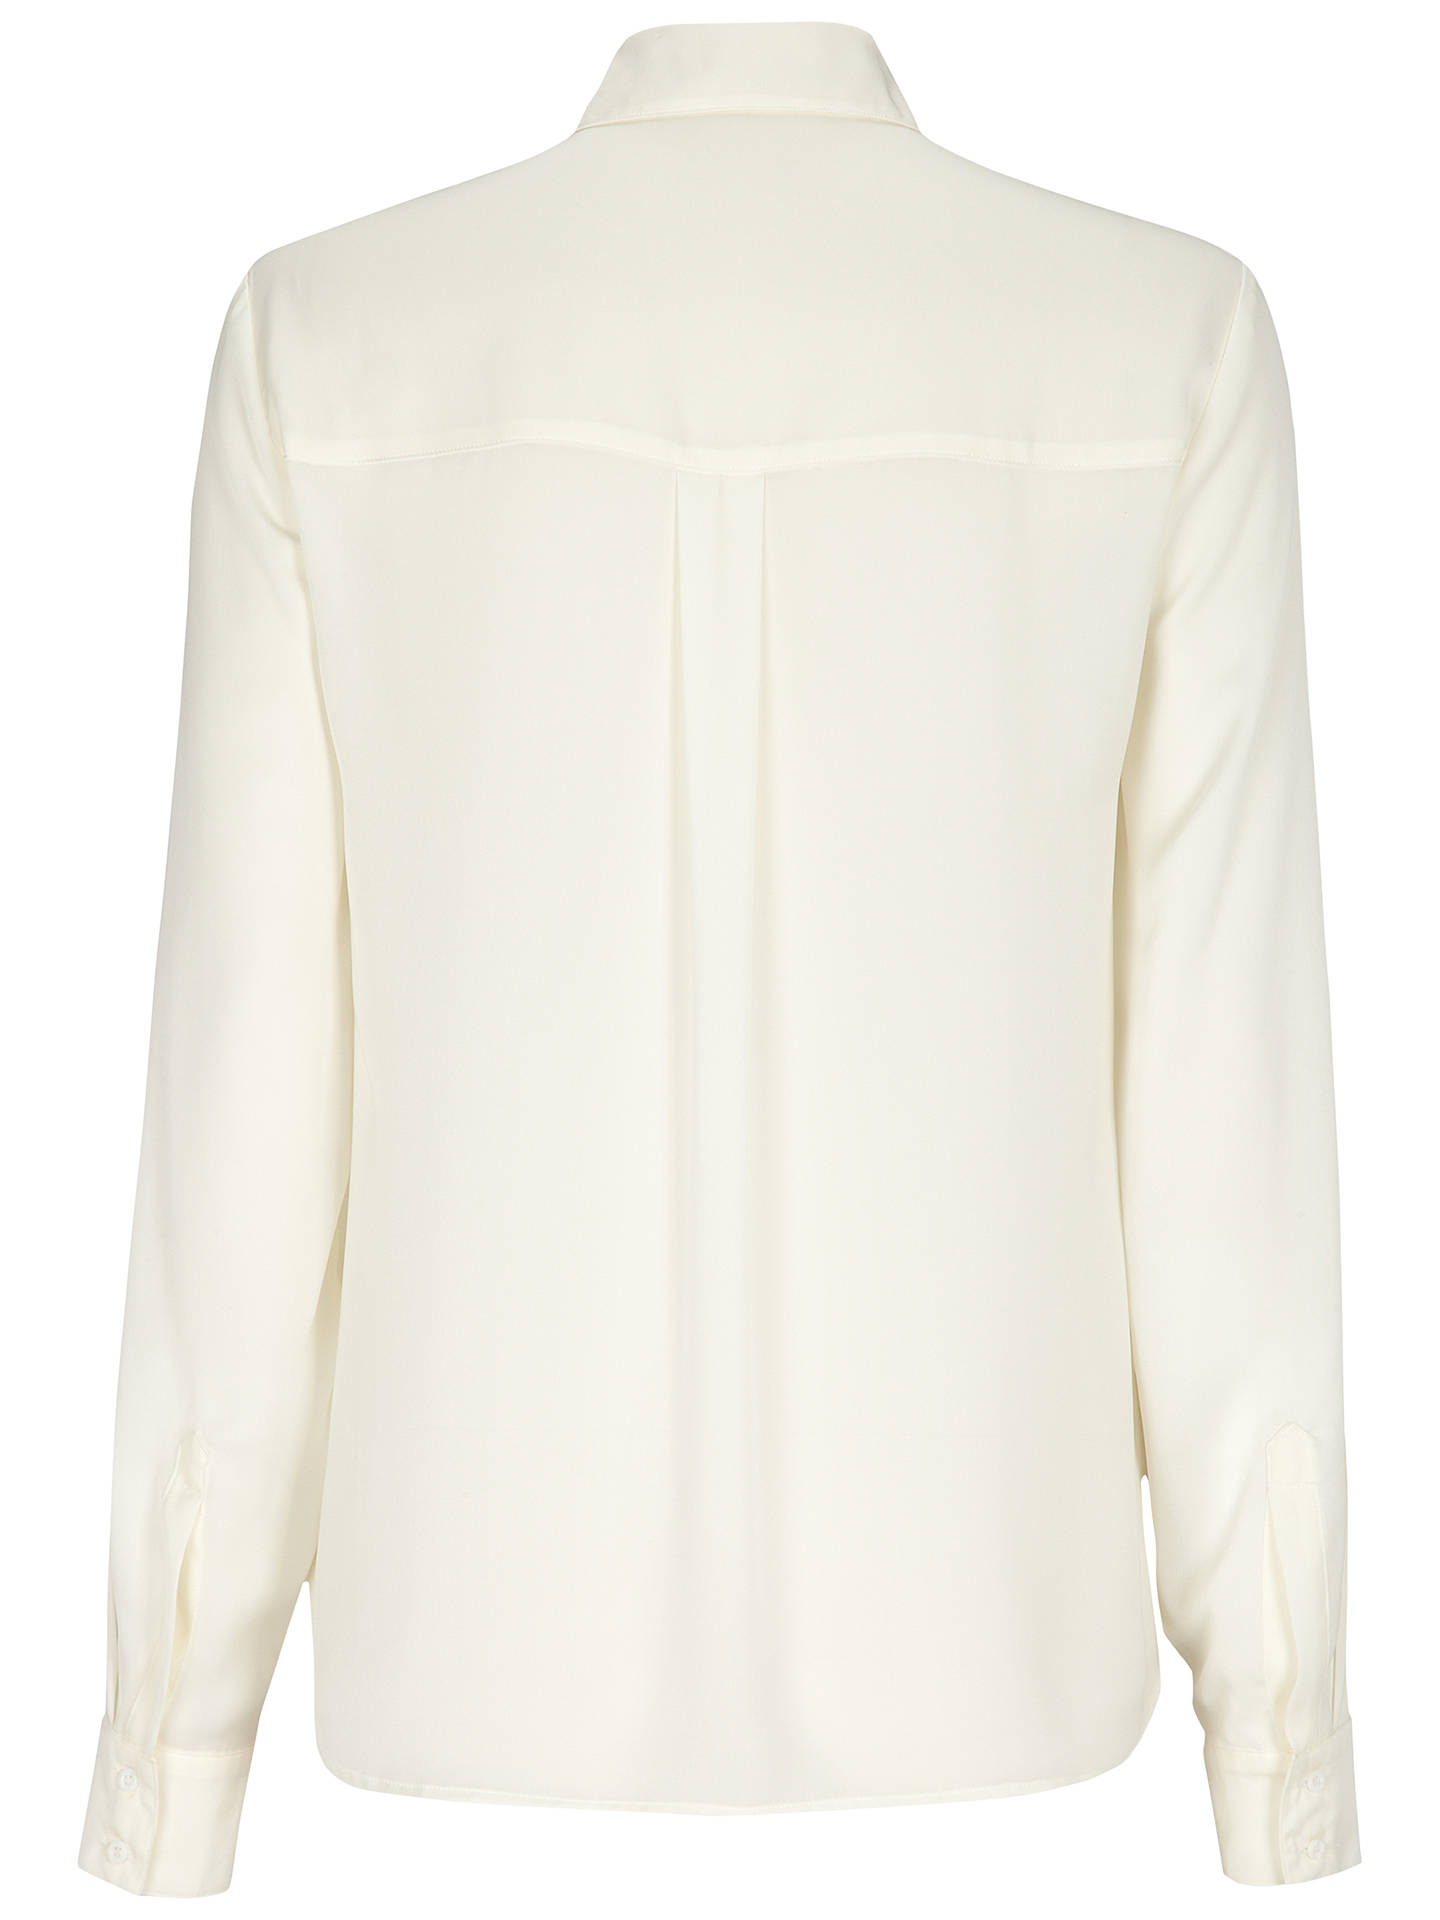 Buy Oui Contrast Trim Shirt, White/Red, 12 Online at johnlewis.com